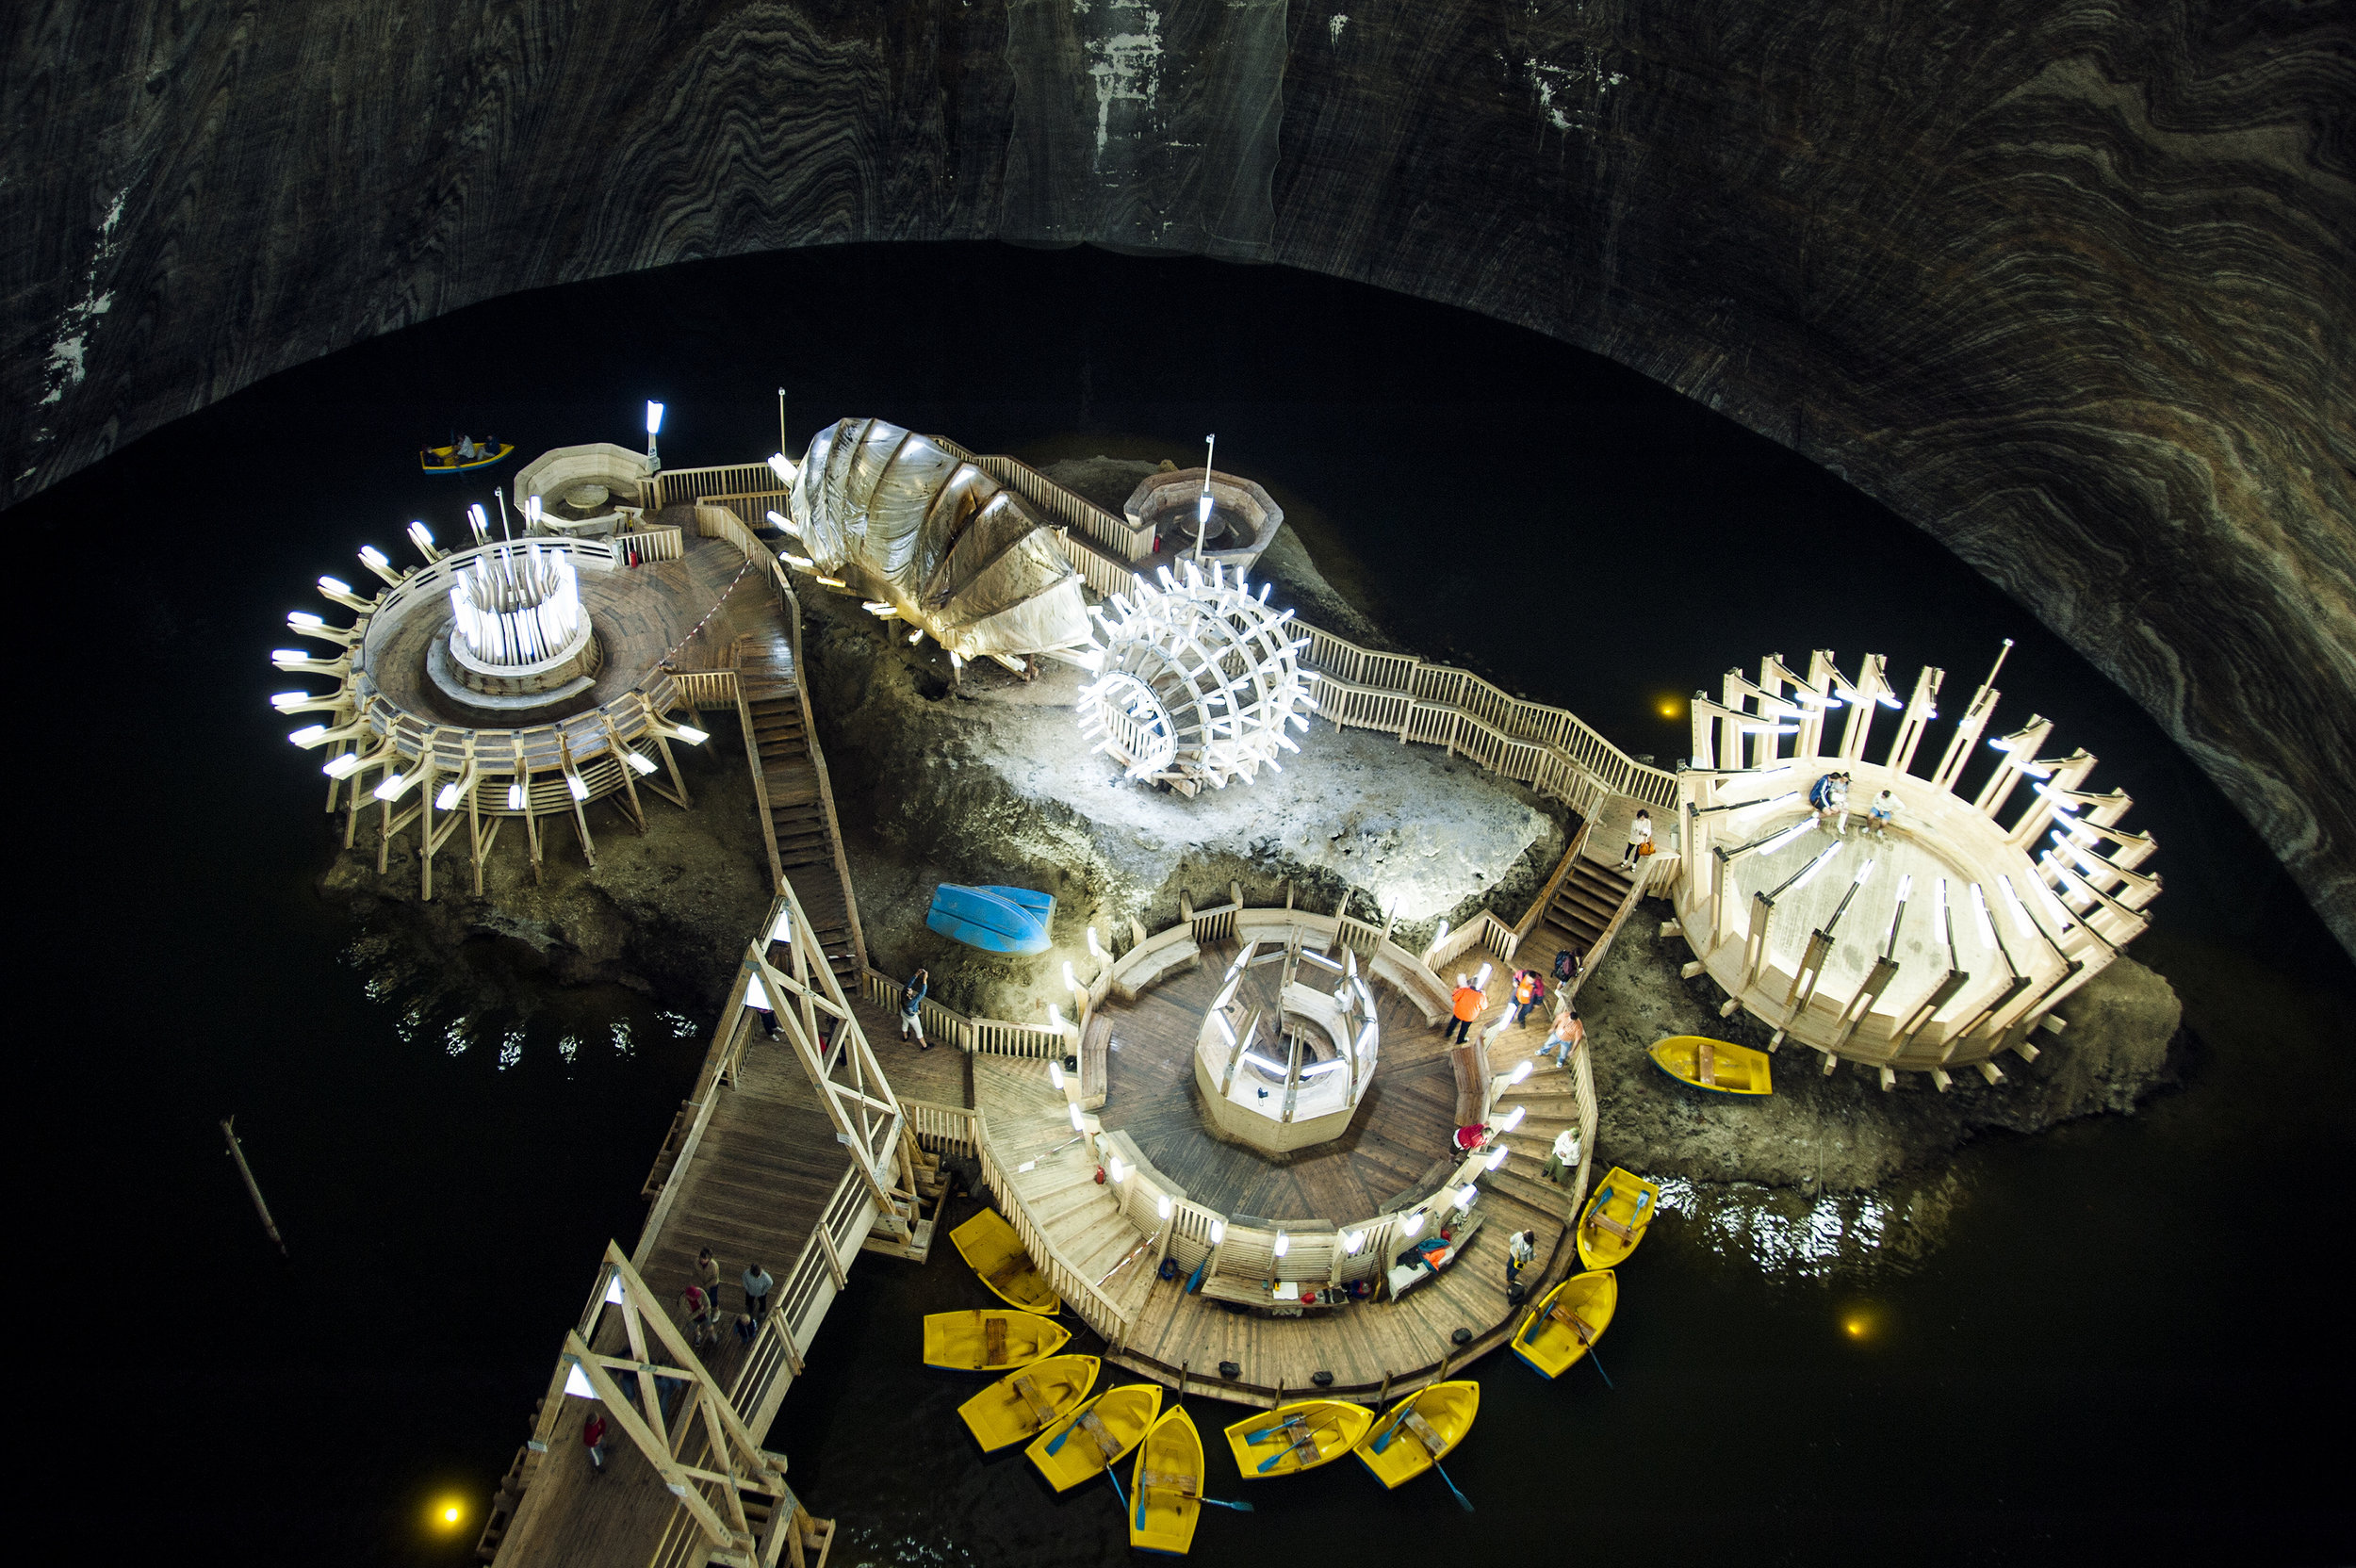 The Turda salt mines near central Romania are home to massive caverns once at the forefront of Romania's salt mining industry. Today, visitors can take a boat ride hundreds of meters below the surface or enjoy the magnificent cathedral-like structure.